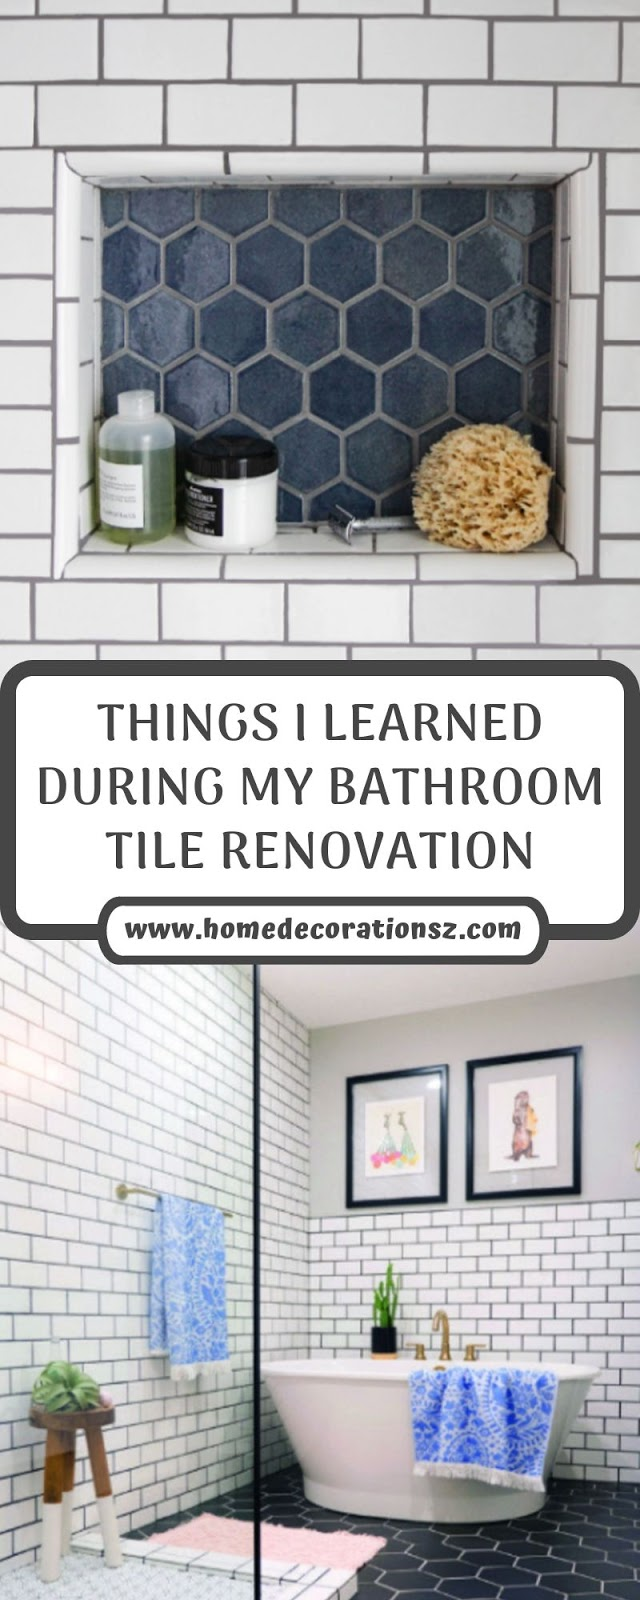 THINGS I LEARNED DURING MY BATHROOM TILE RENOVATION